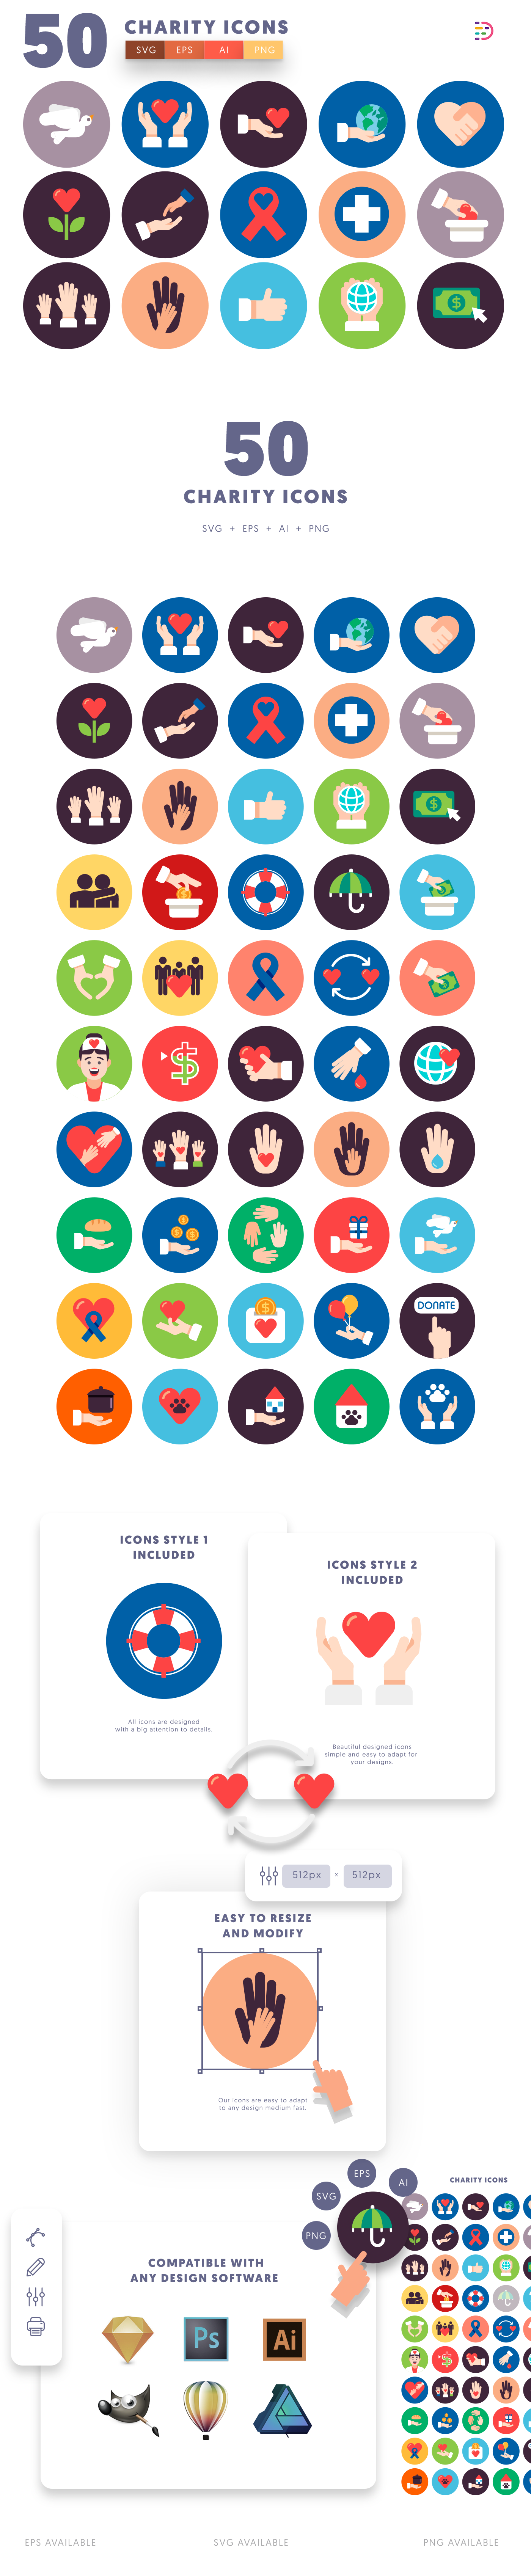 50 Charity Icons list